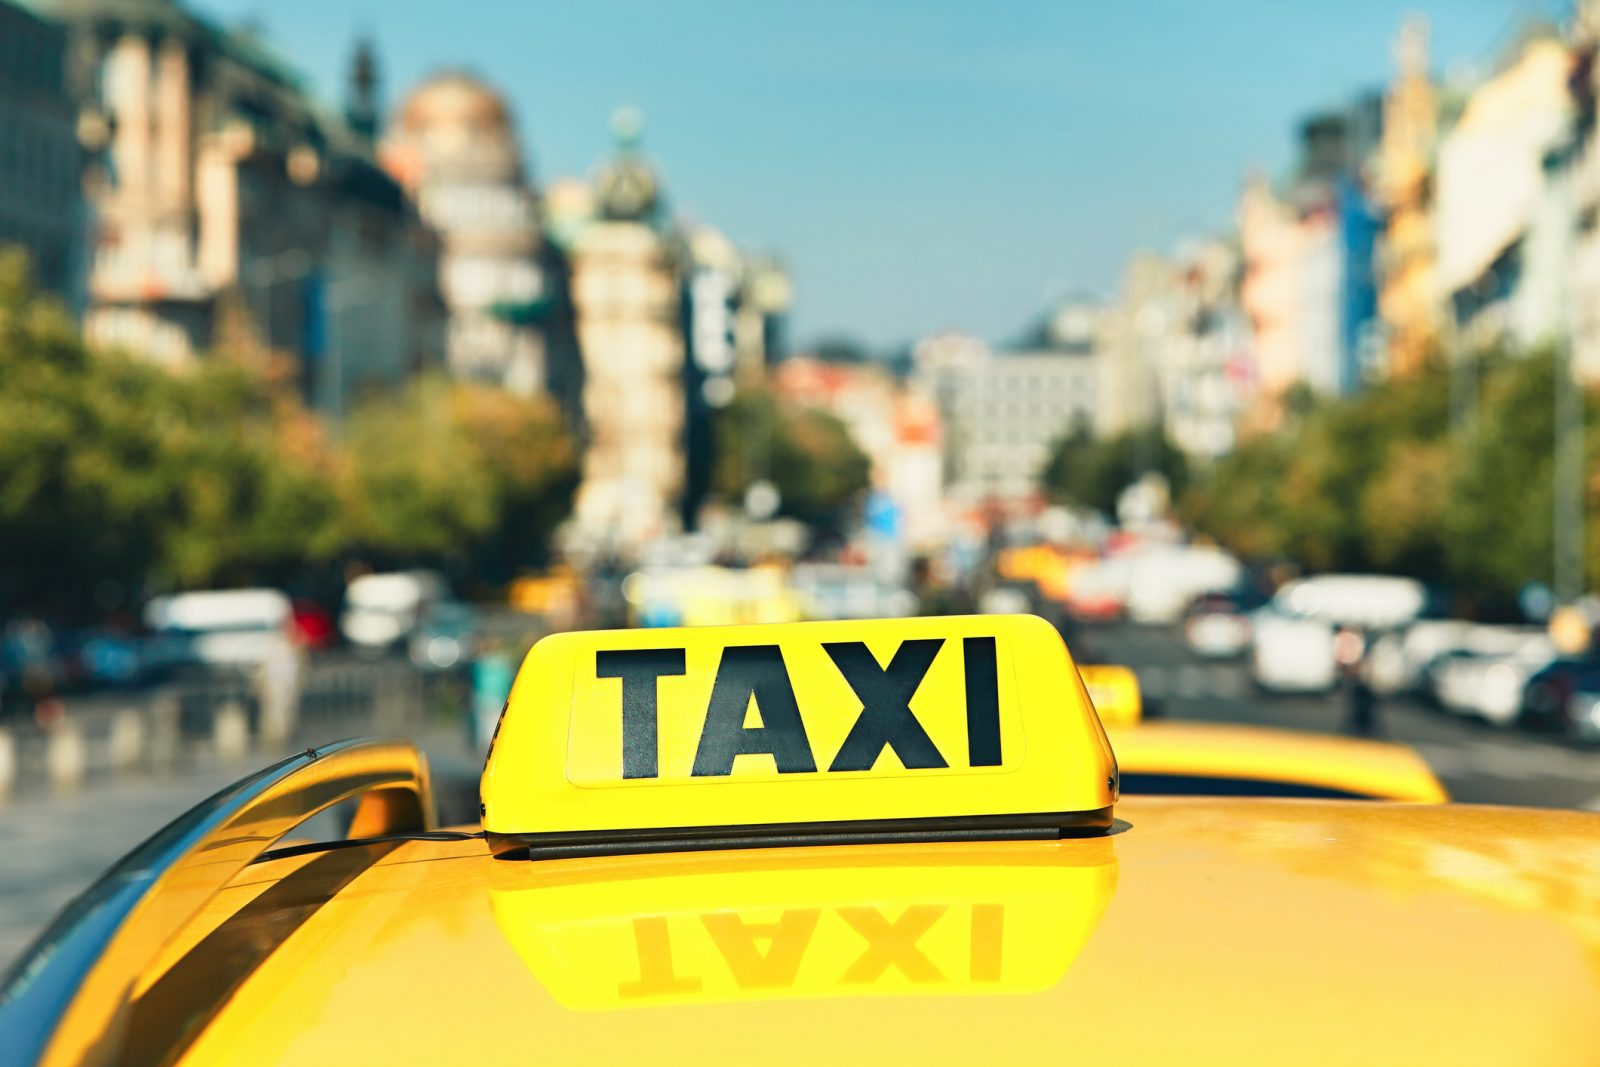 Prague is the fifth cheapest city to travel by taxi to the airport